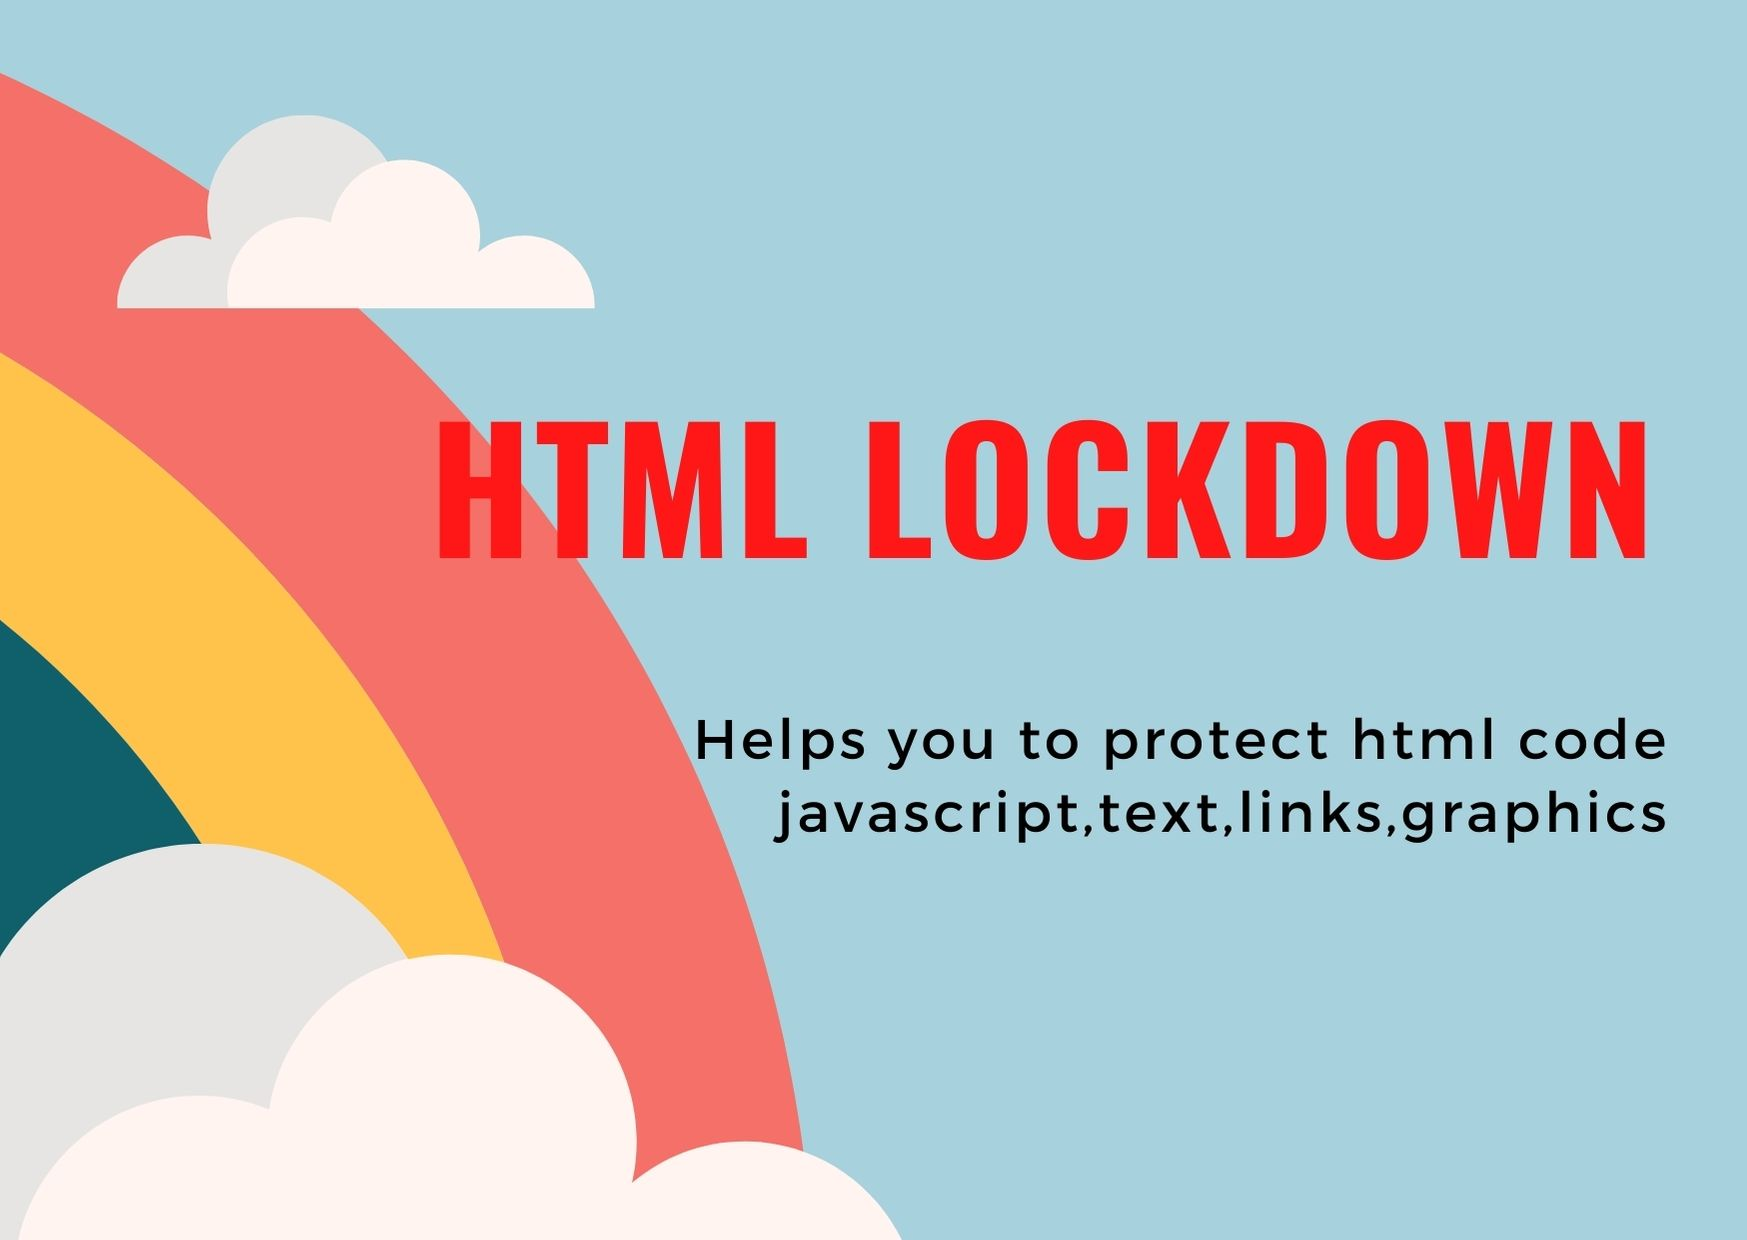 Html lock down,  helps to protect html code,  java script,  text,  links,  graphics